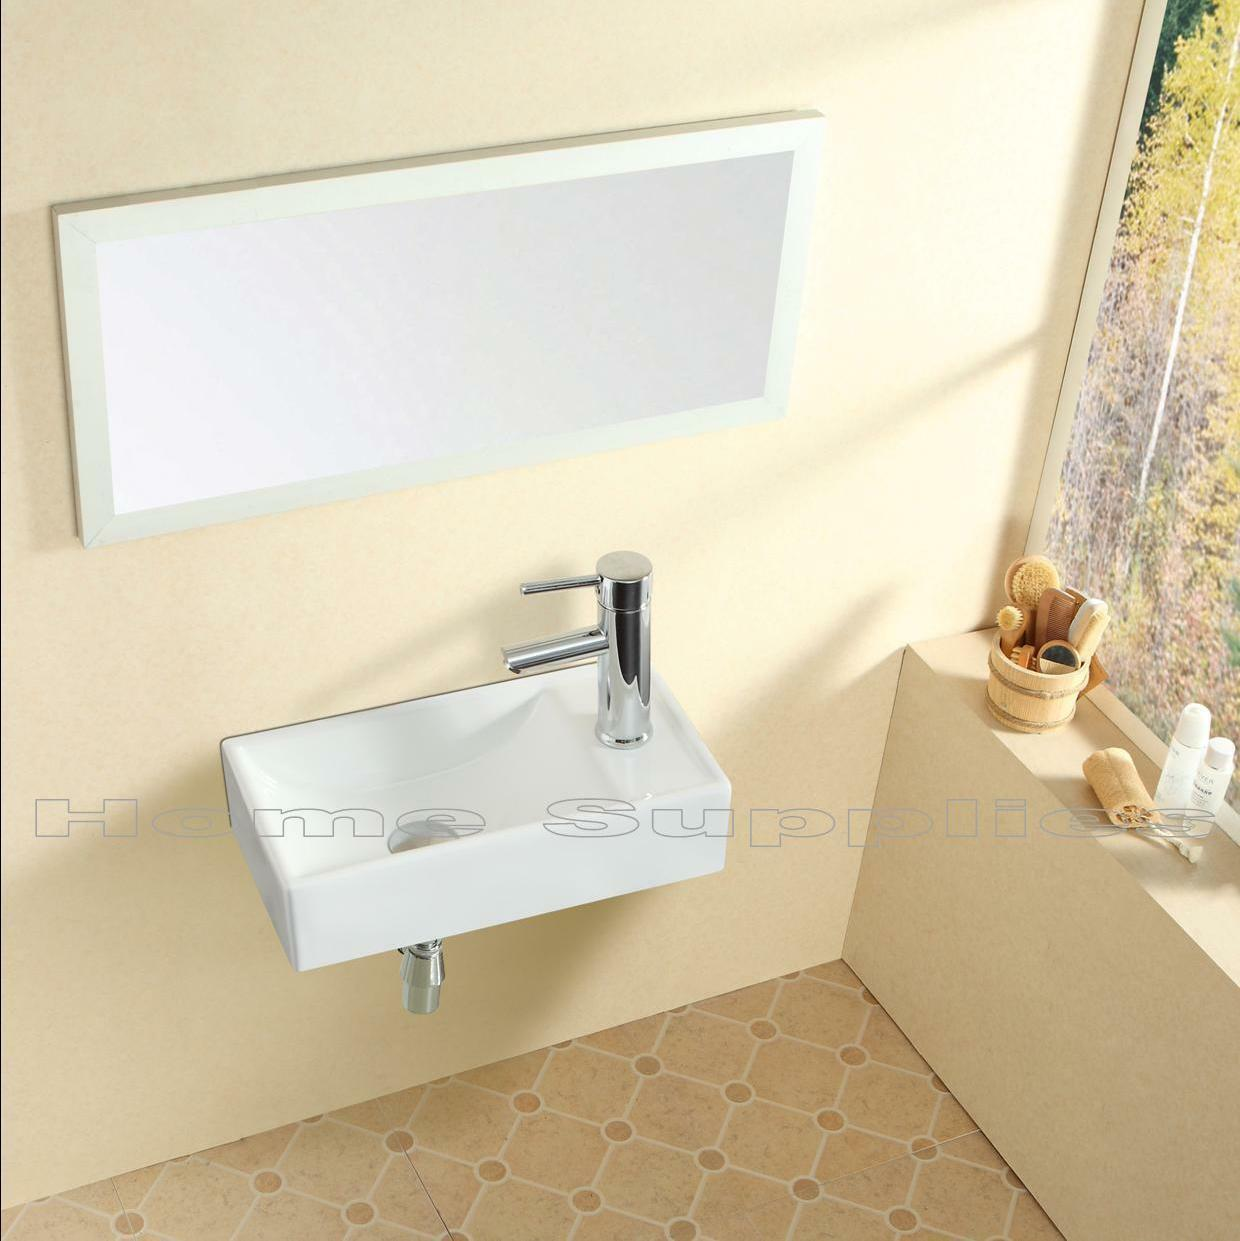 Define Kitchen Sink Kitchen Sinking Meaning Large Size Of: Small Bathroom Sink Rectangle Wall Mount Cloakroom Hand